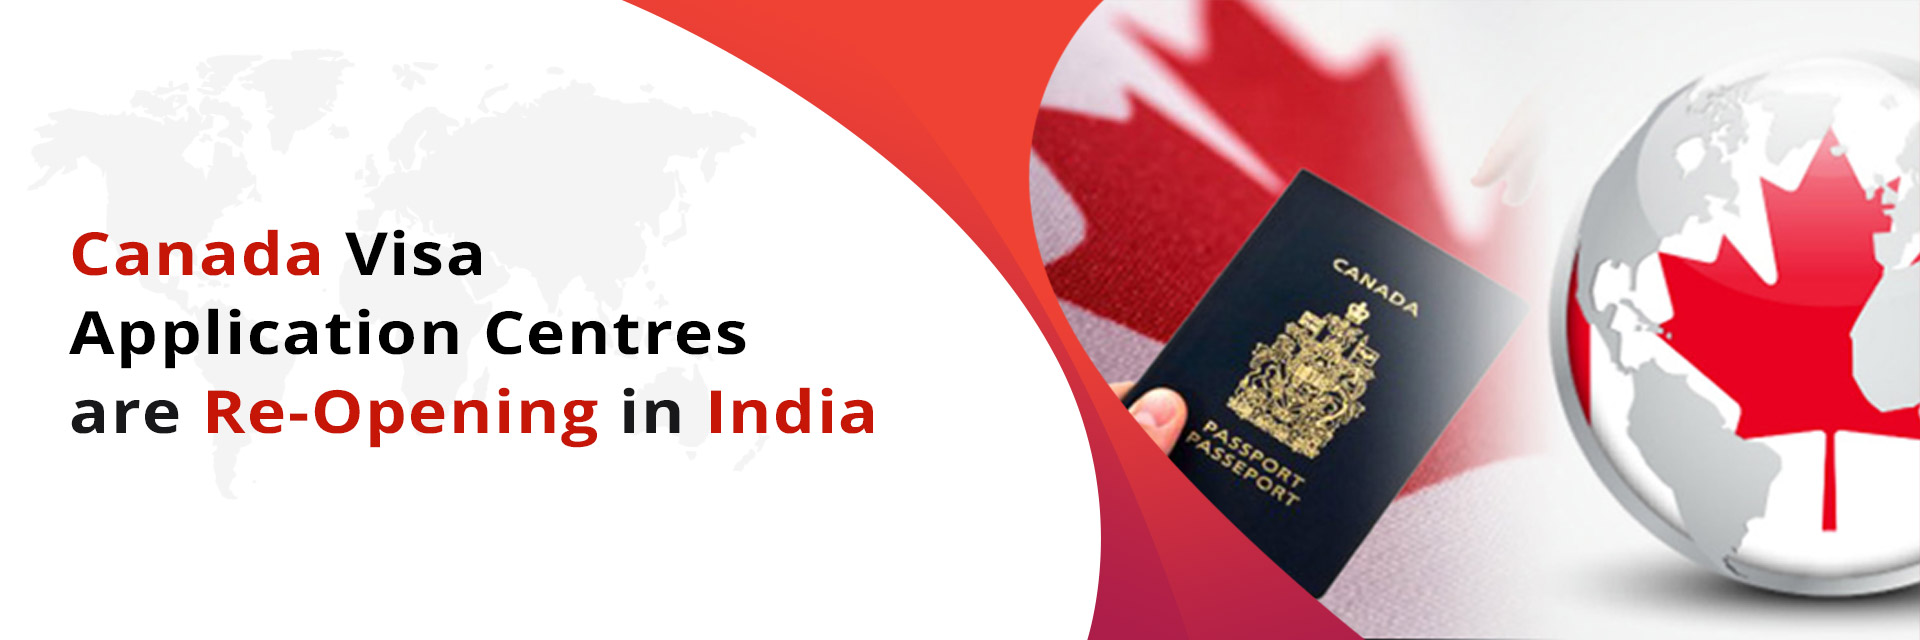 Canada Visa Application Centres re-opens in India